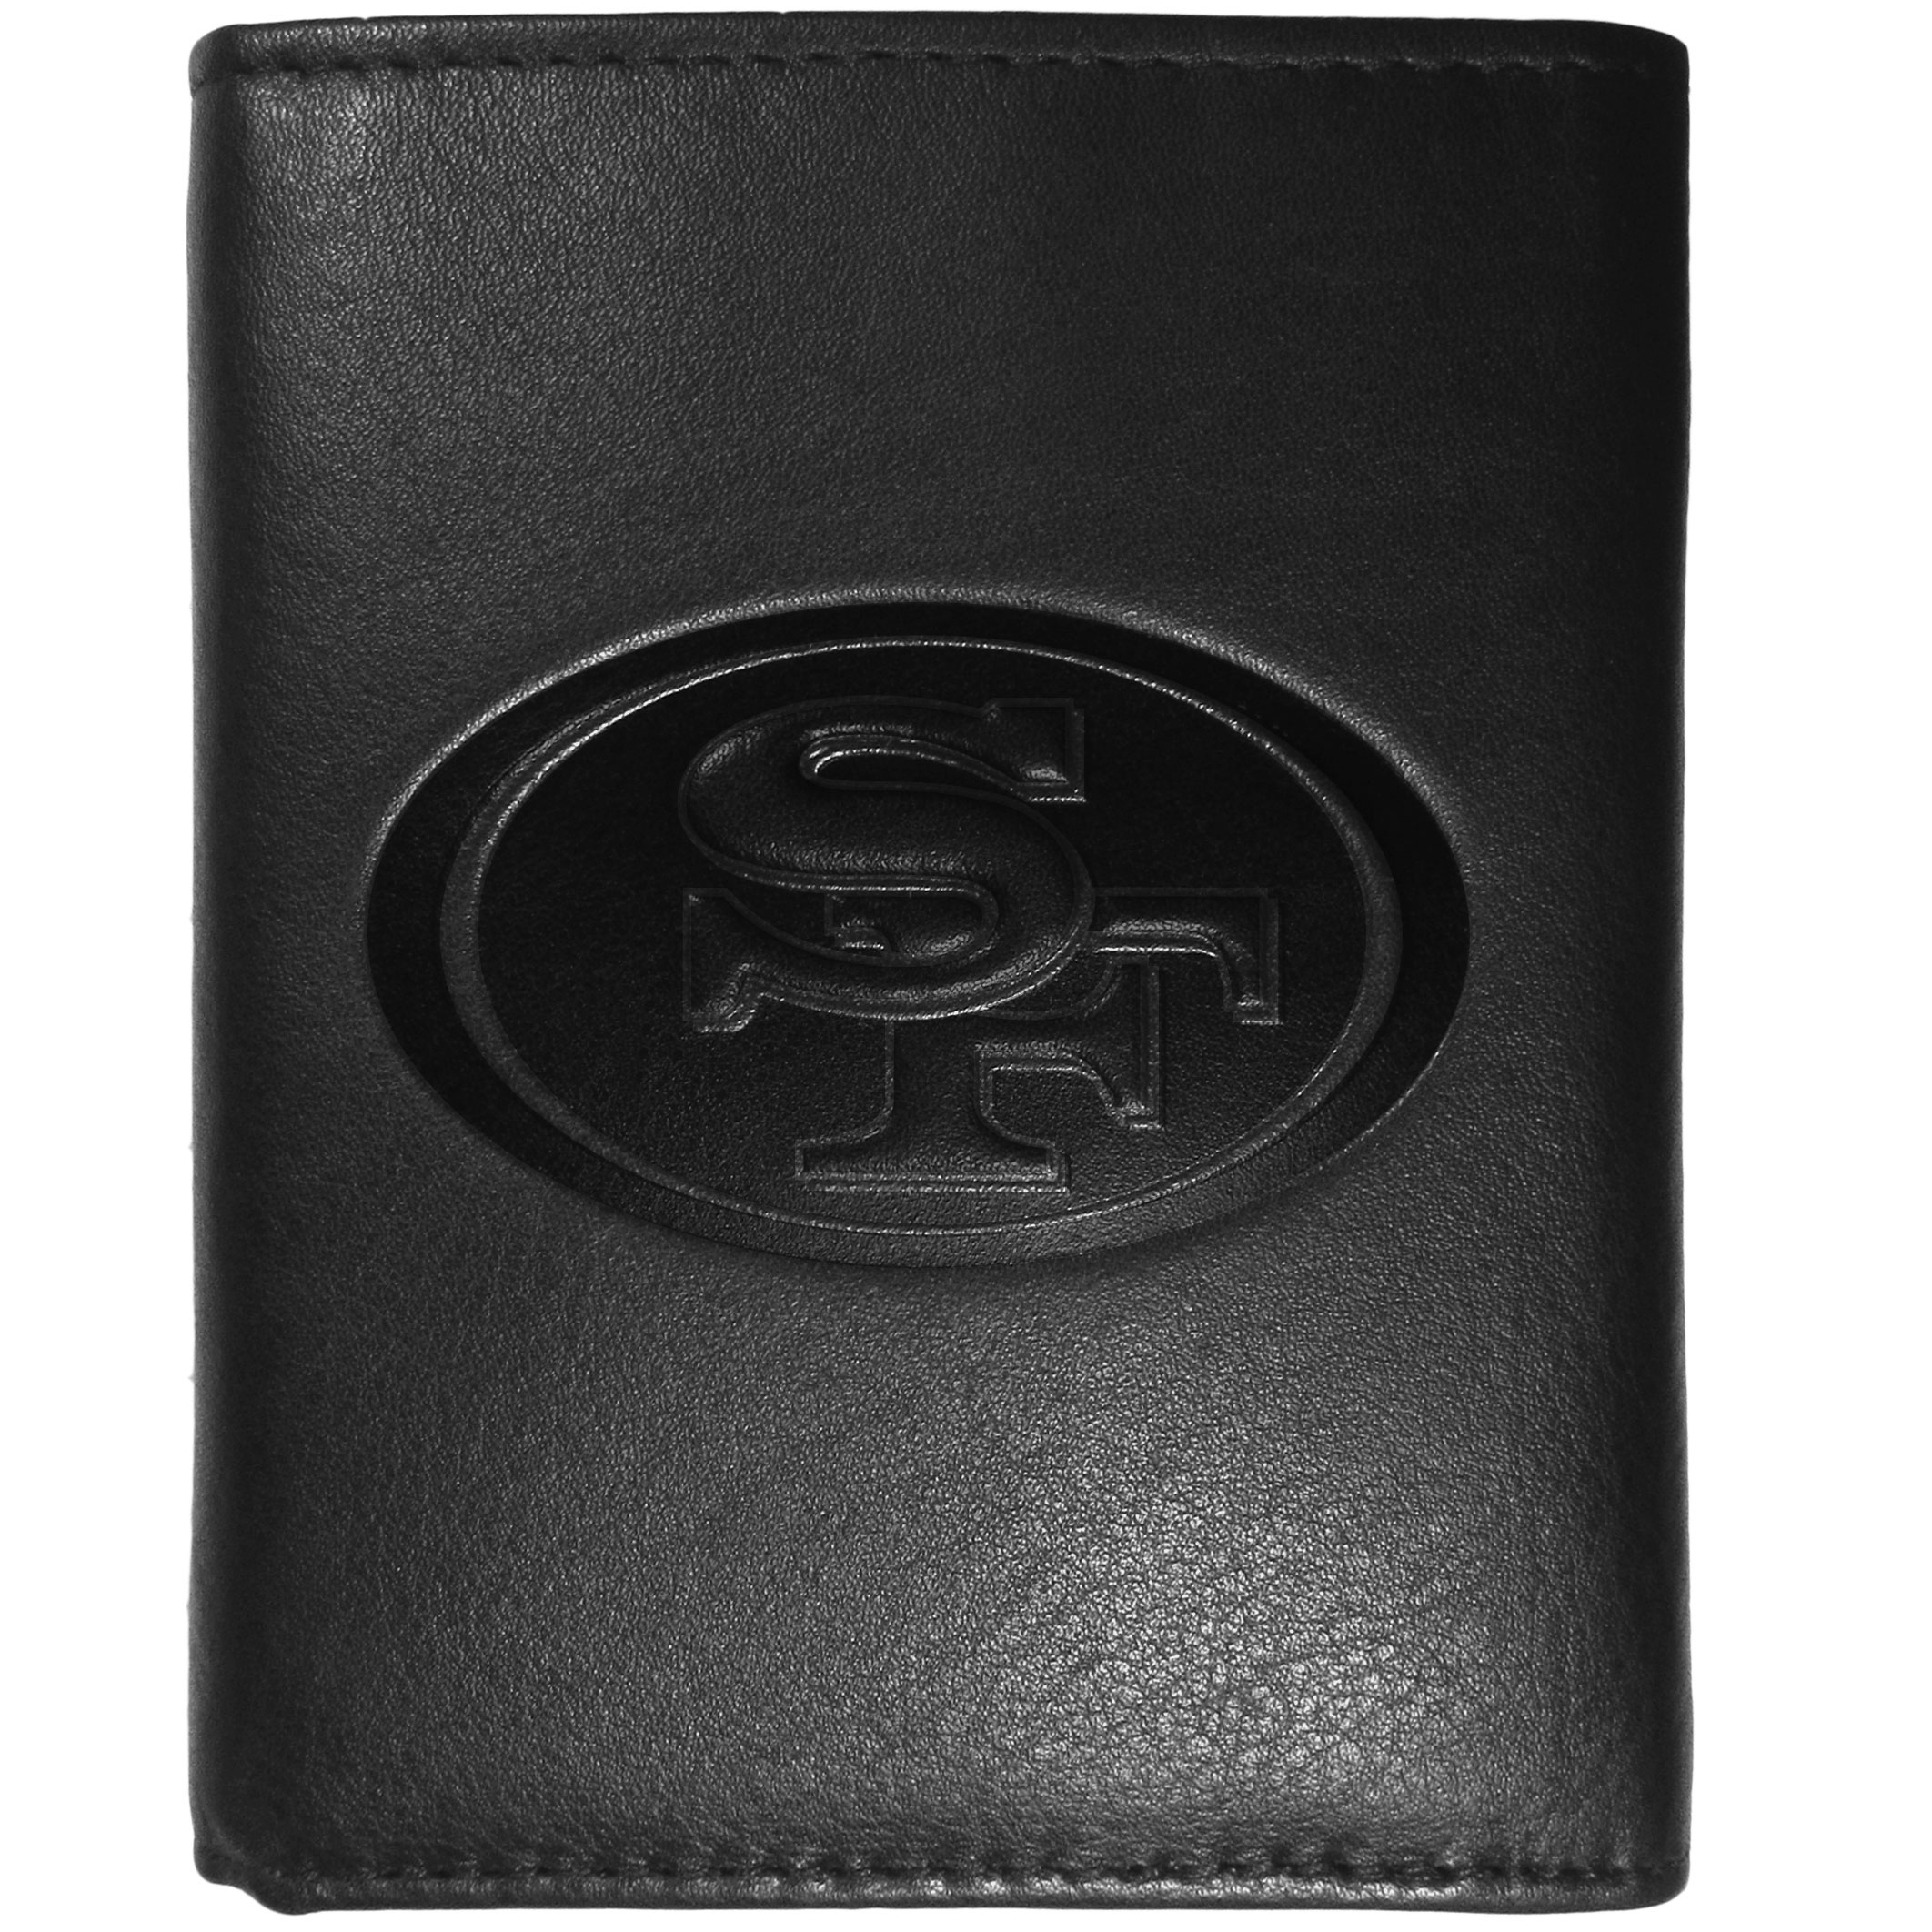 San Francisco 49ers Embossed Leather Tri-fold Wallet - This stylish leather wallet is made of high quality leather with a supple feel and classic look. The front of the tri-fold style wallet has a deeply embossed San Francisco 49ers logo. The billfold is packed with features that will allow to keep organized, lots of credit card slots, windowed ID slot, large pockets for bills and a removable sleeve with extra slots for even more storage. This is a must-have men's fashion accessory that would make any fan very proud to own.